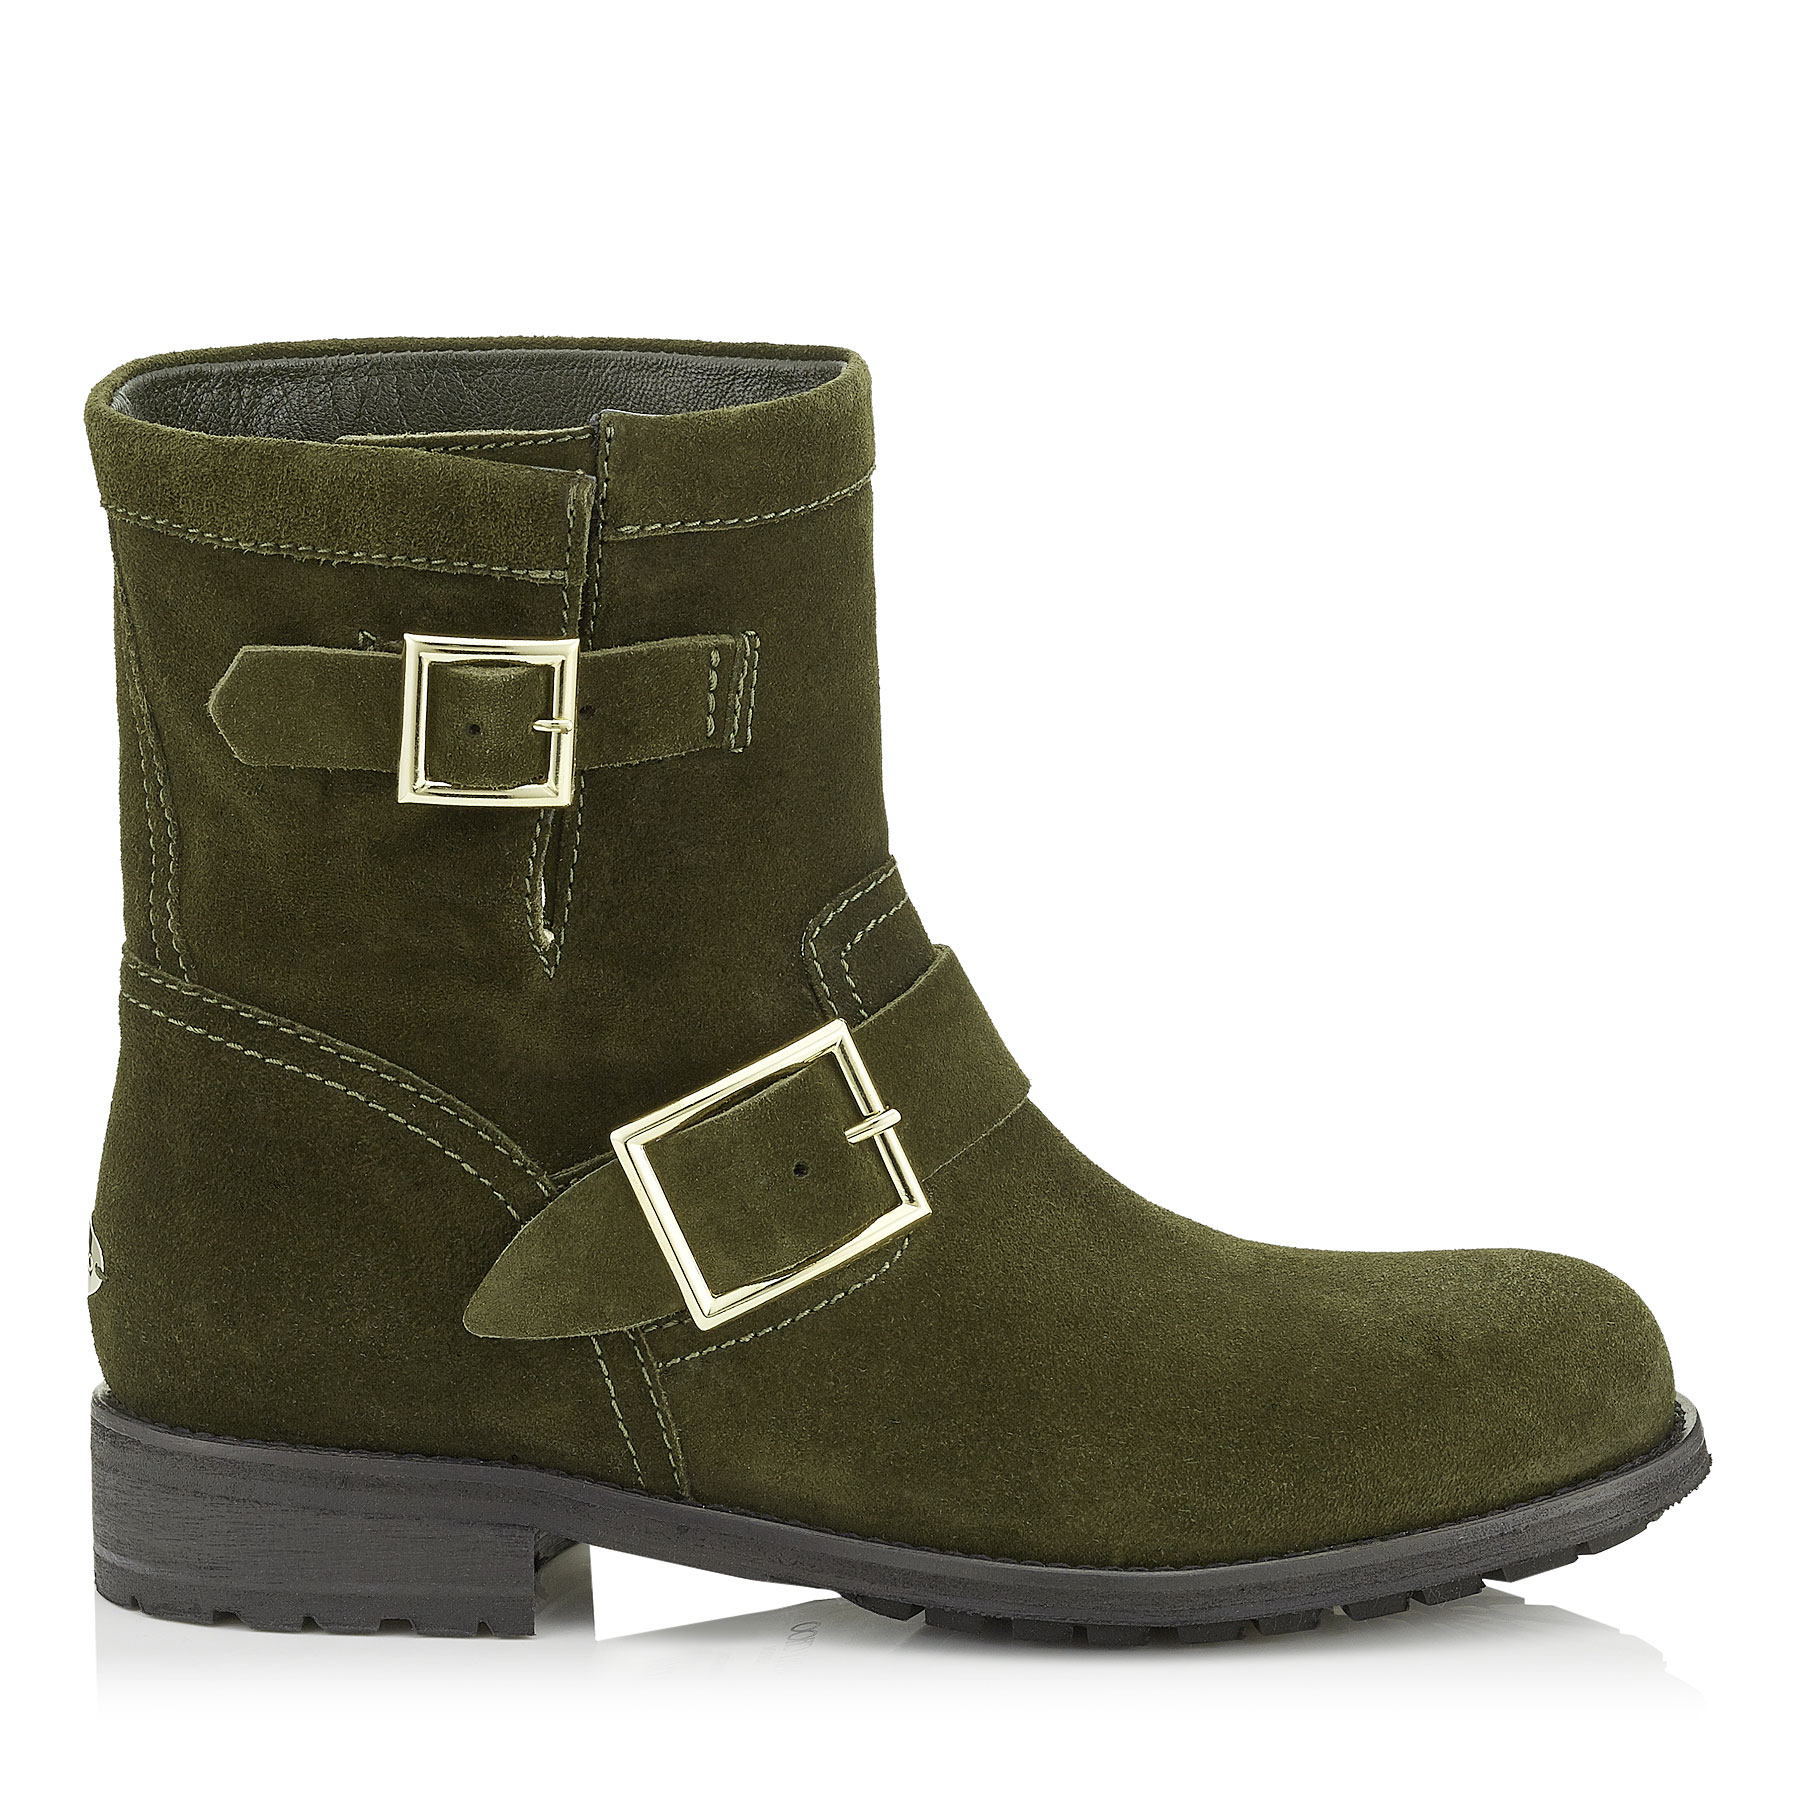 YOUTH Army Green Suede Biker Boots